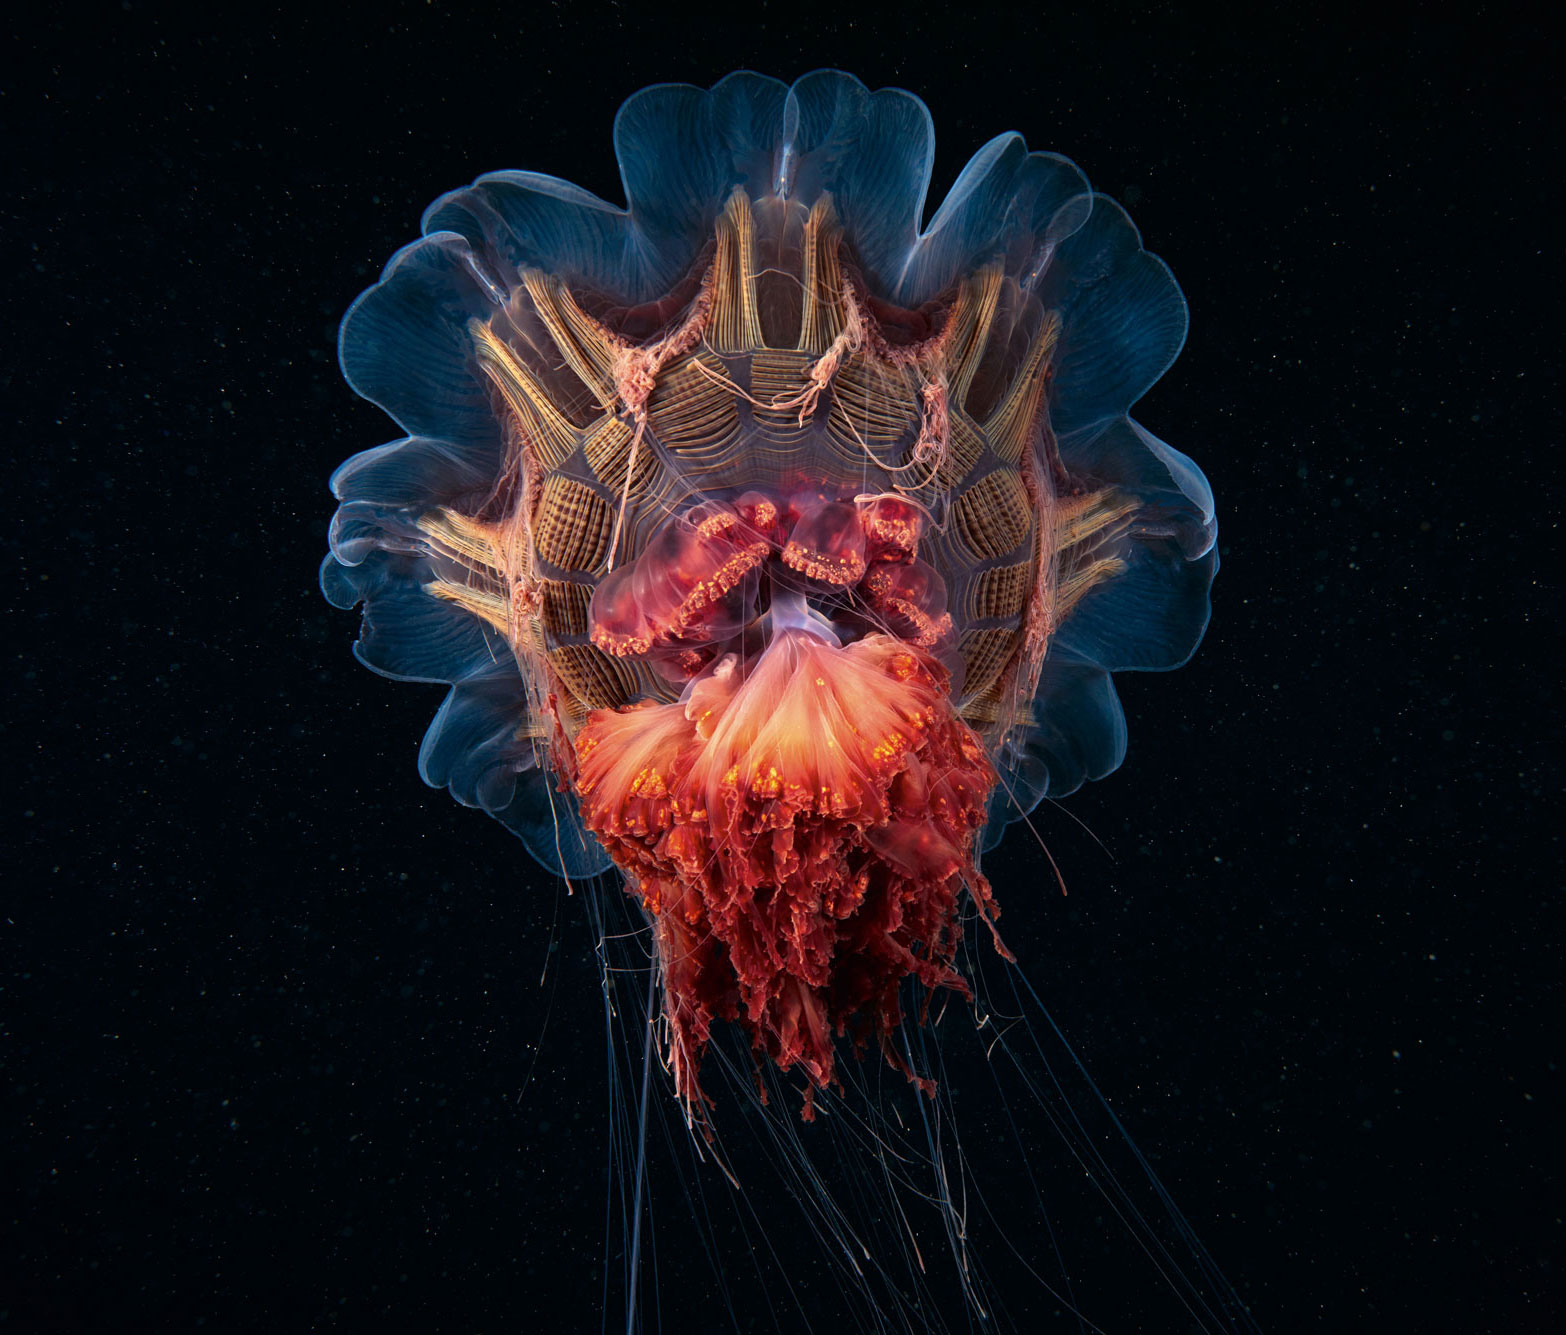 Astonishing Animals – The Lion's Mane Jellyfish